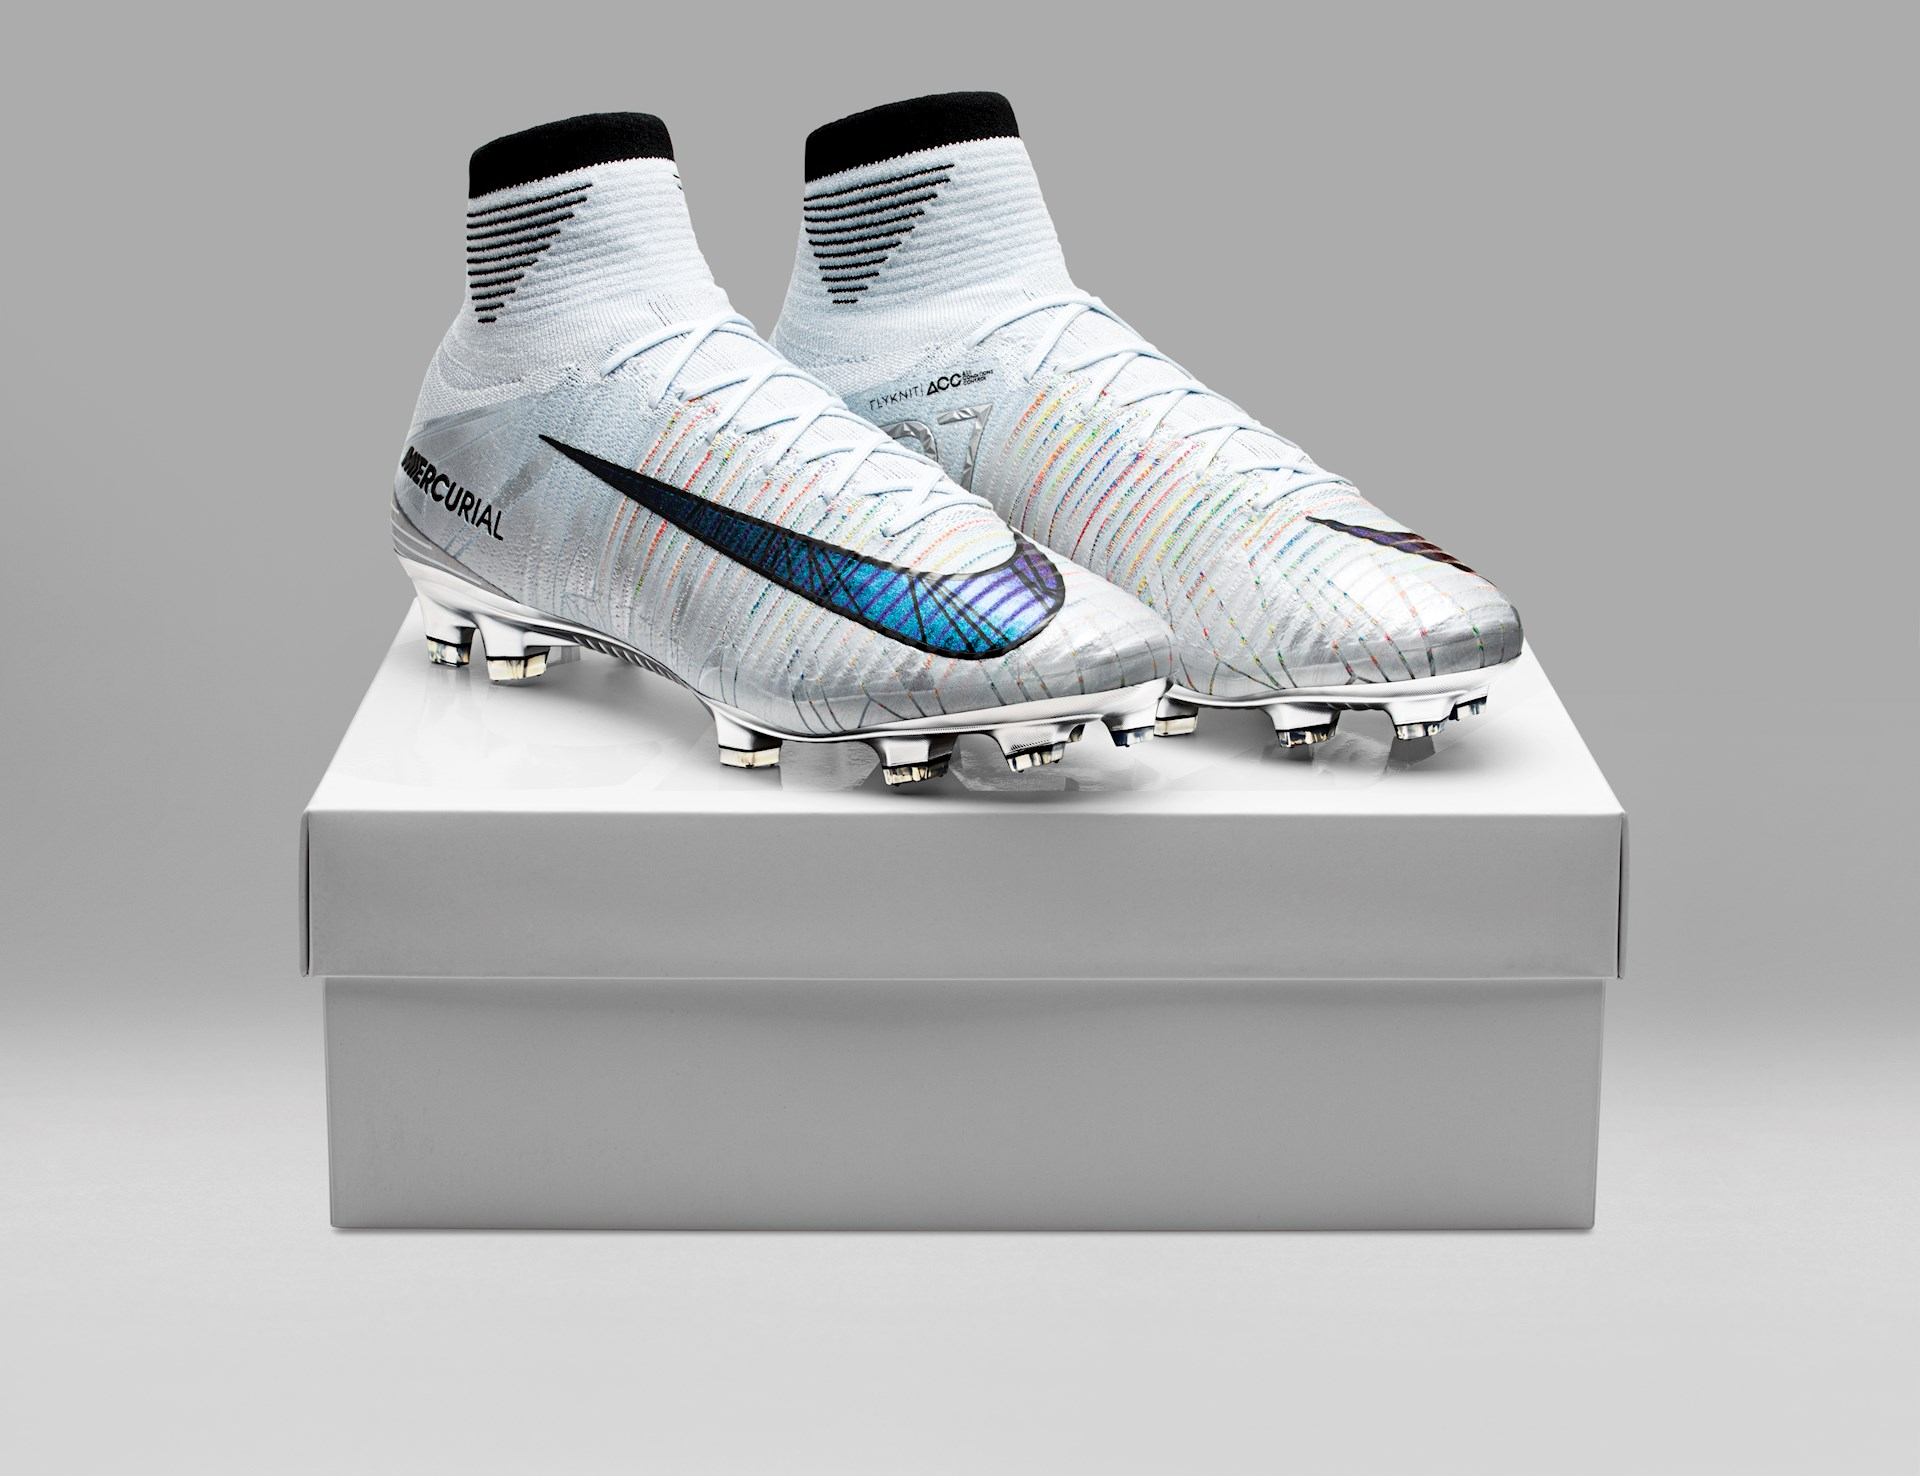 Nike Mercurial Superfly V CR7 Cut to Brilliance Voetbal